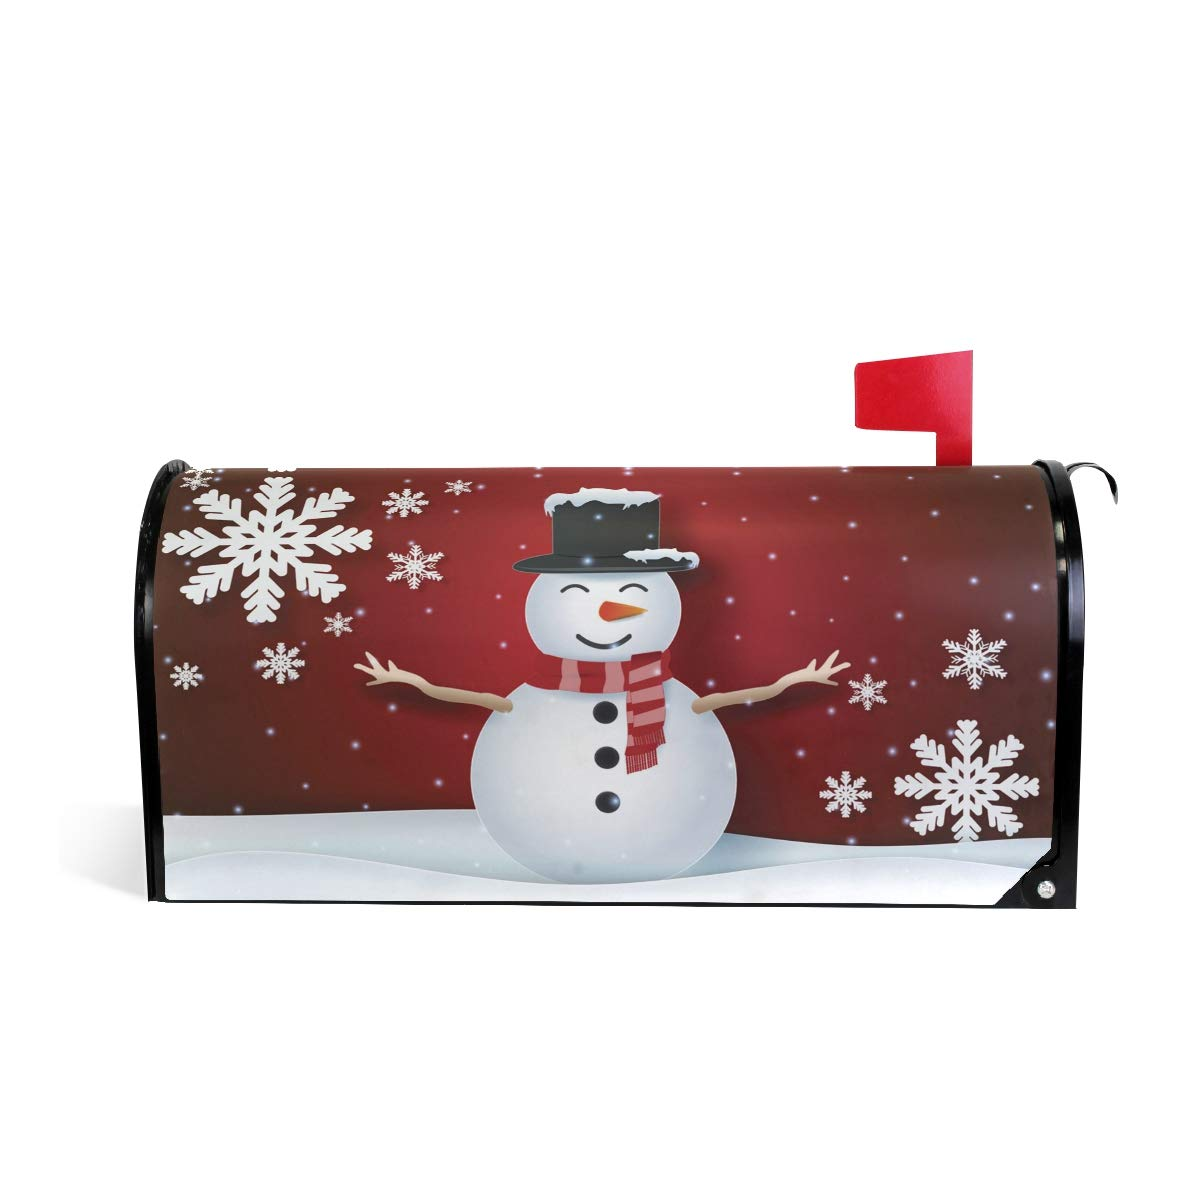 WOOR Winter Magnetic Mailbox Cover Standard Size-18x 20.8